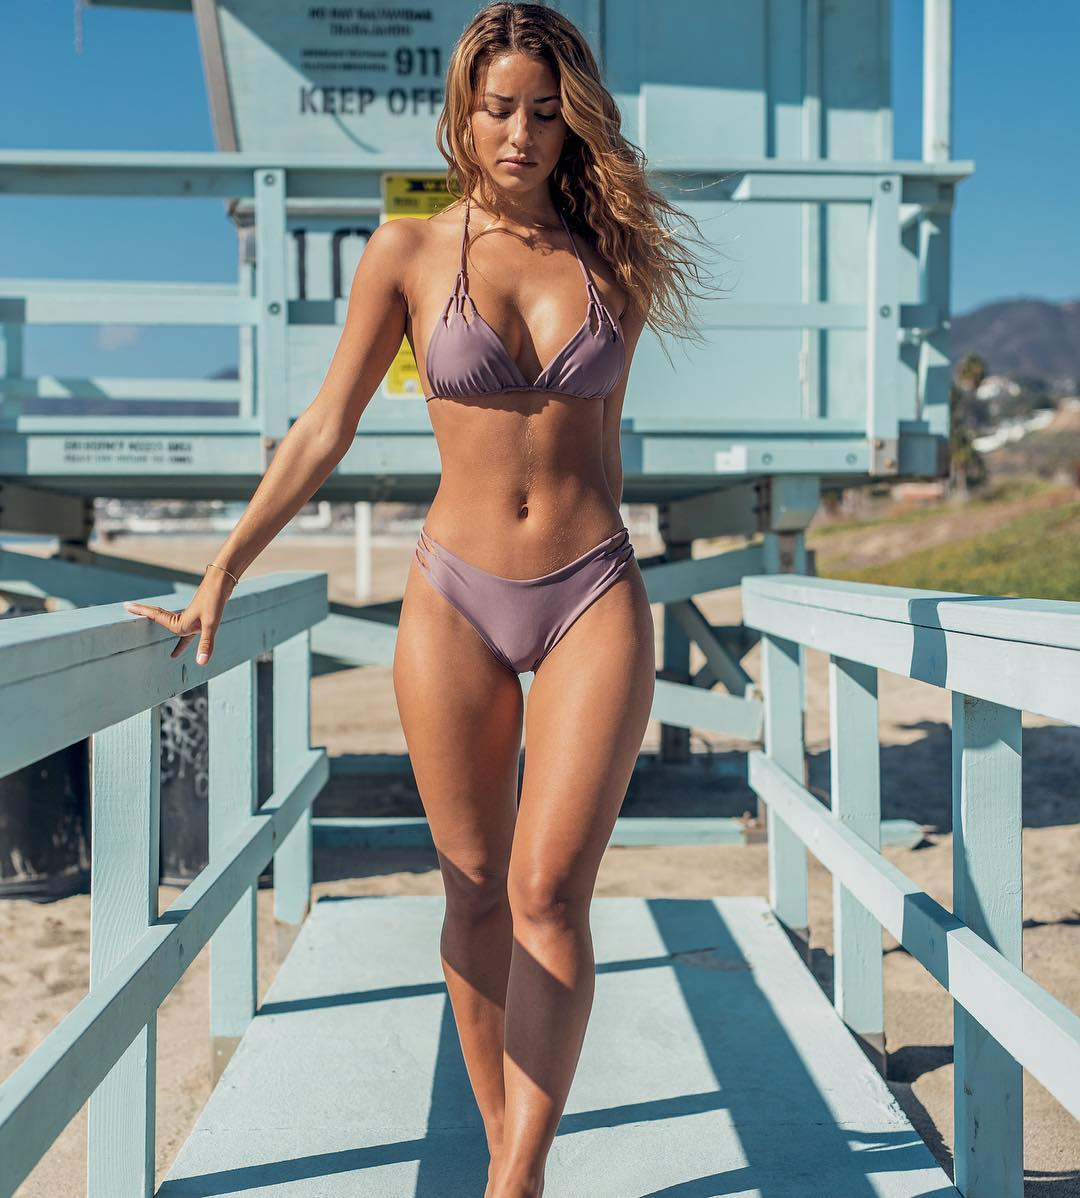 Pics Sierra Skye nudes (74 photos), Tits, Sideboobs, Instagram, butt 2018